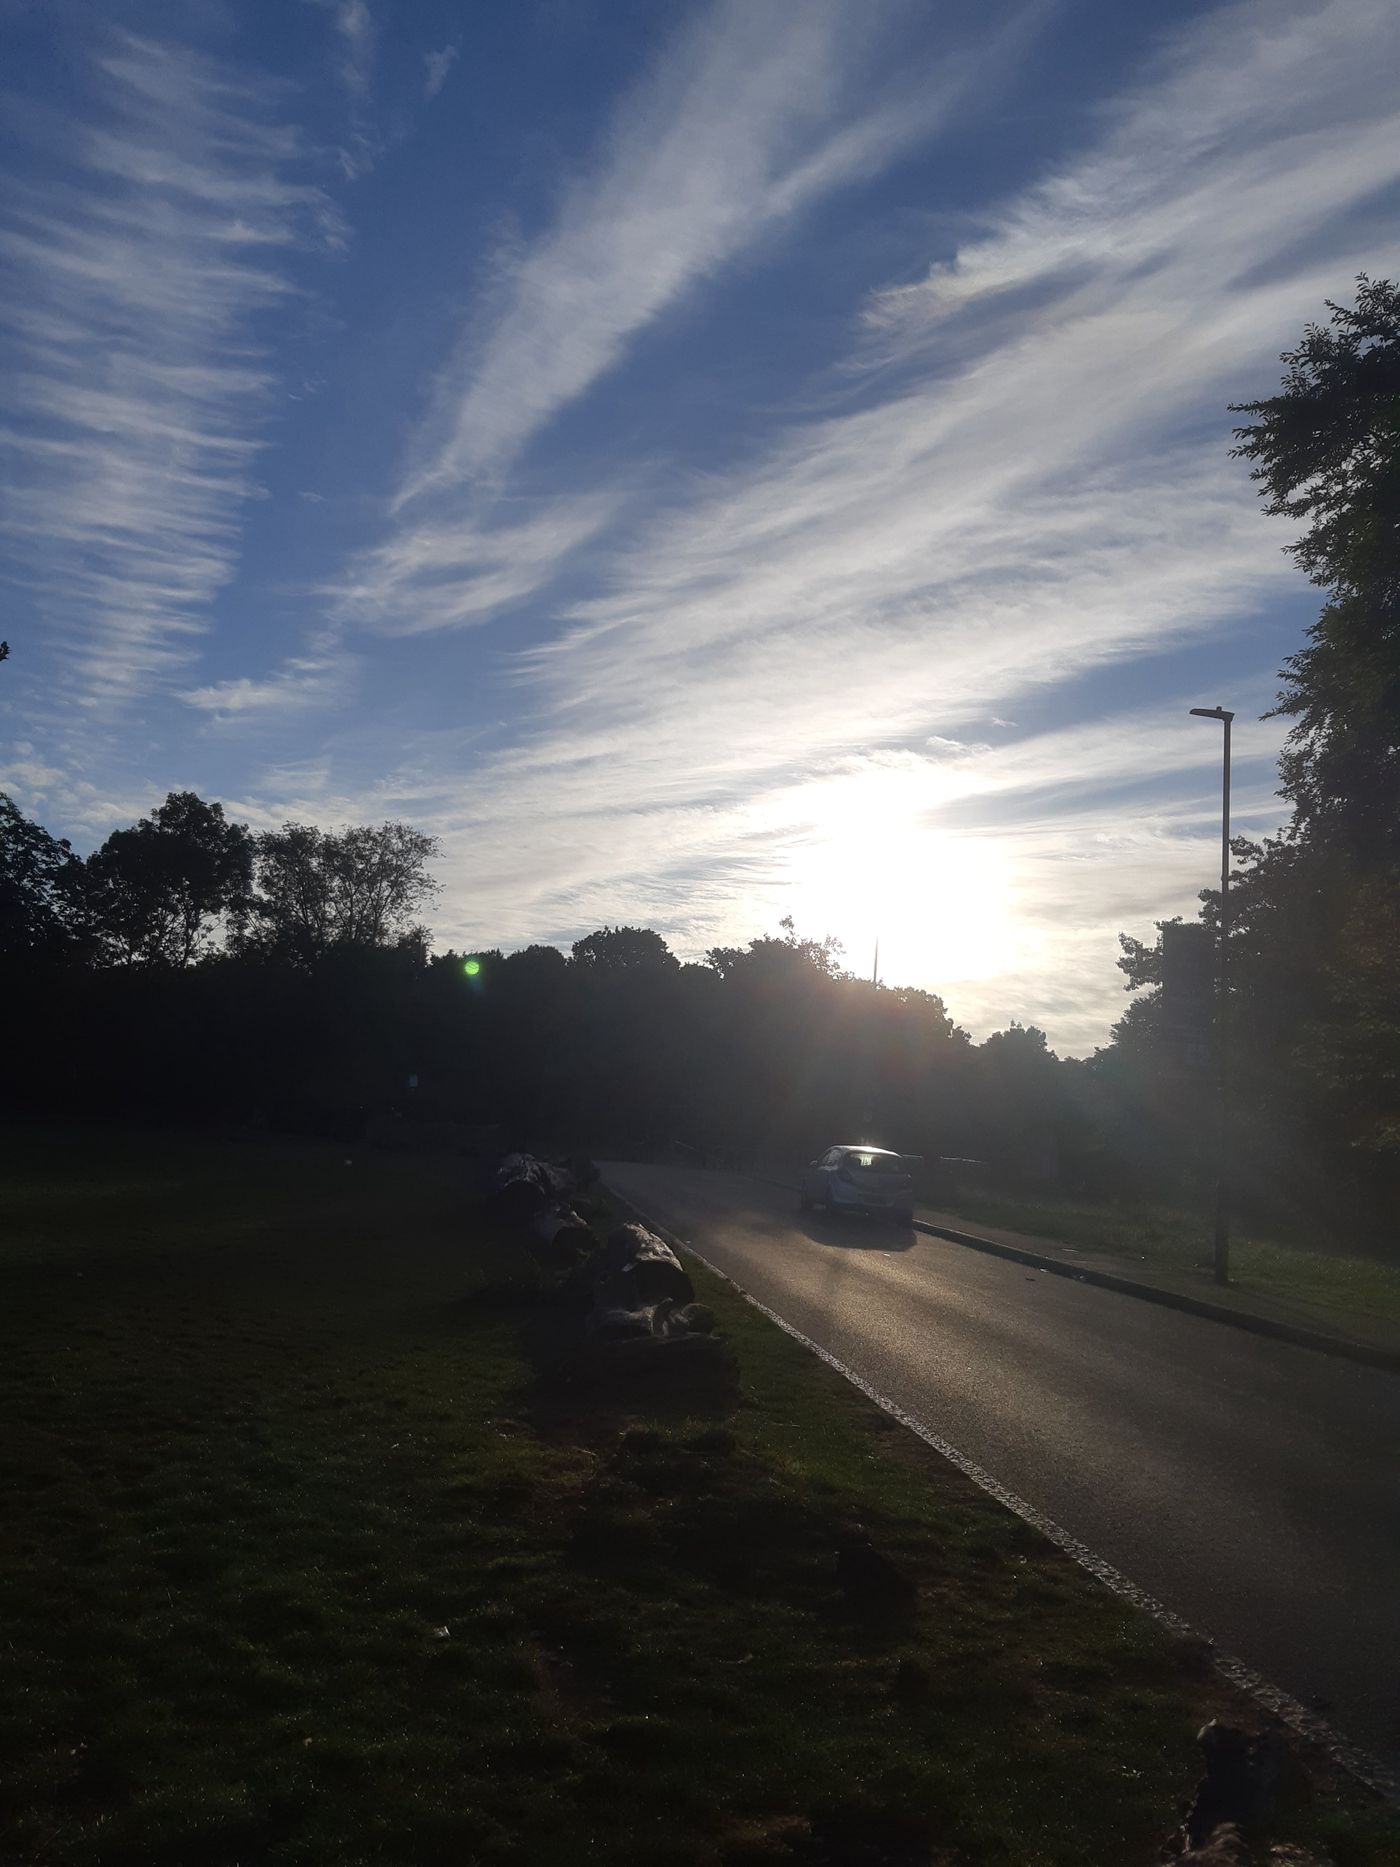 It was a beautiful sunrise this morning in Streatham Common!! Giving Salutation to Sun at 6.30am, what a start of a day 🌄🌞🙏🧘♀️🧘♂️